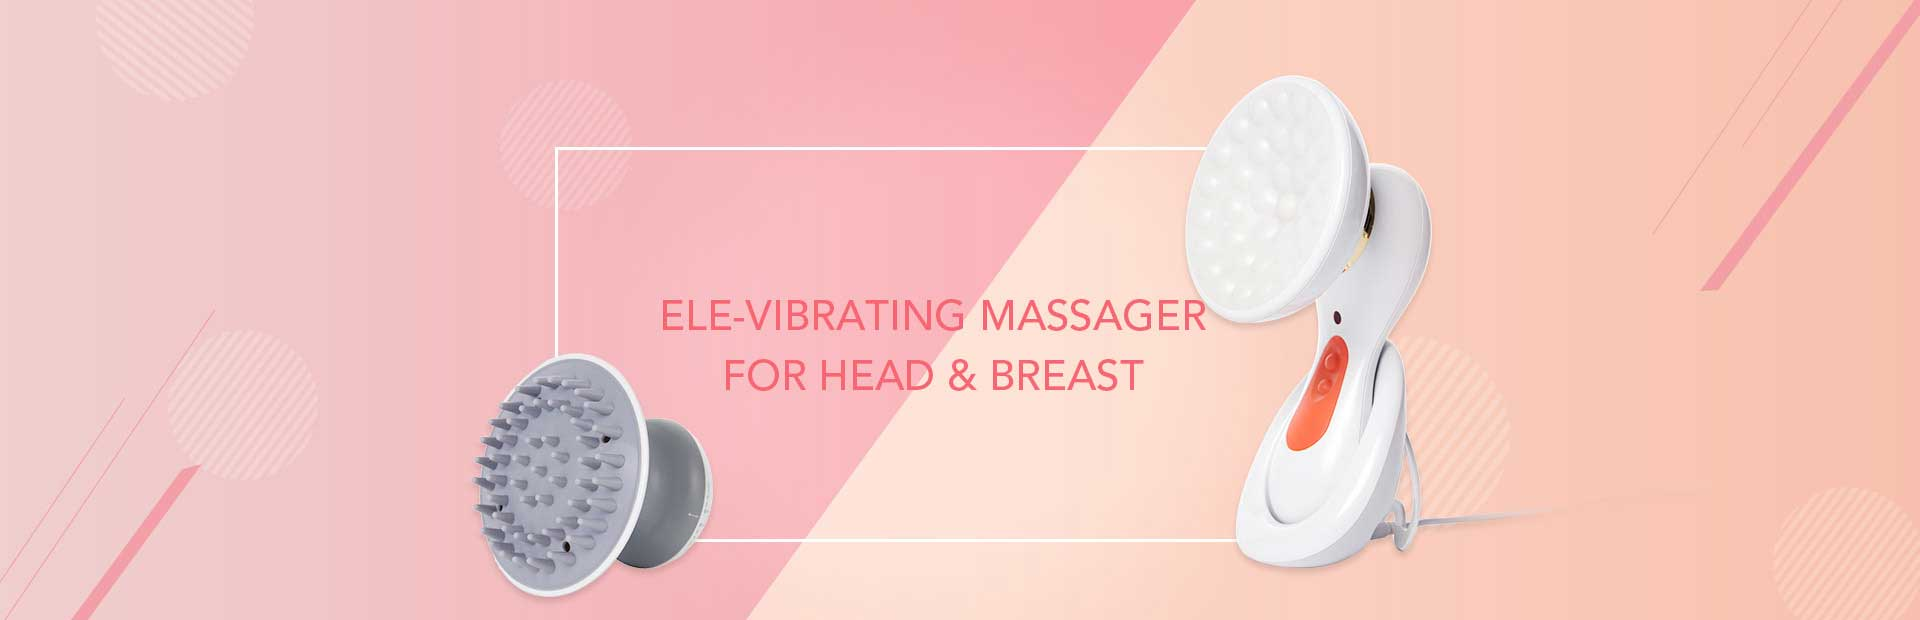 ELE-Vibrating Massager for Head & Breast